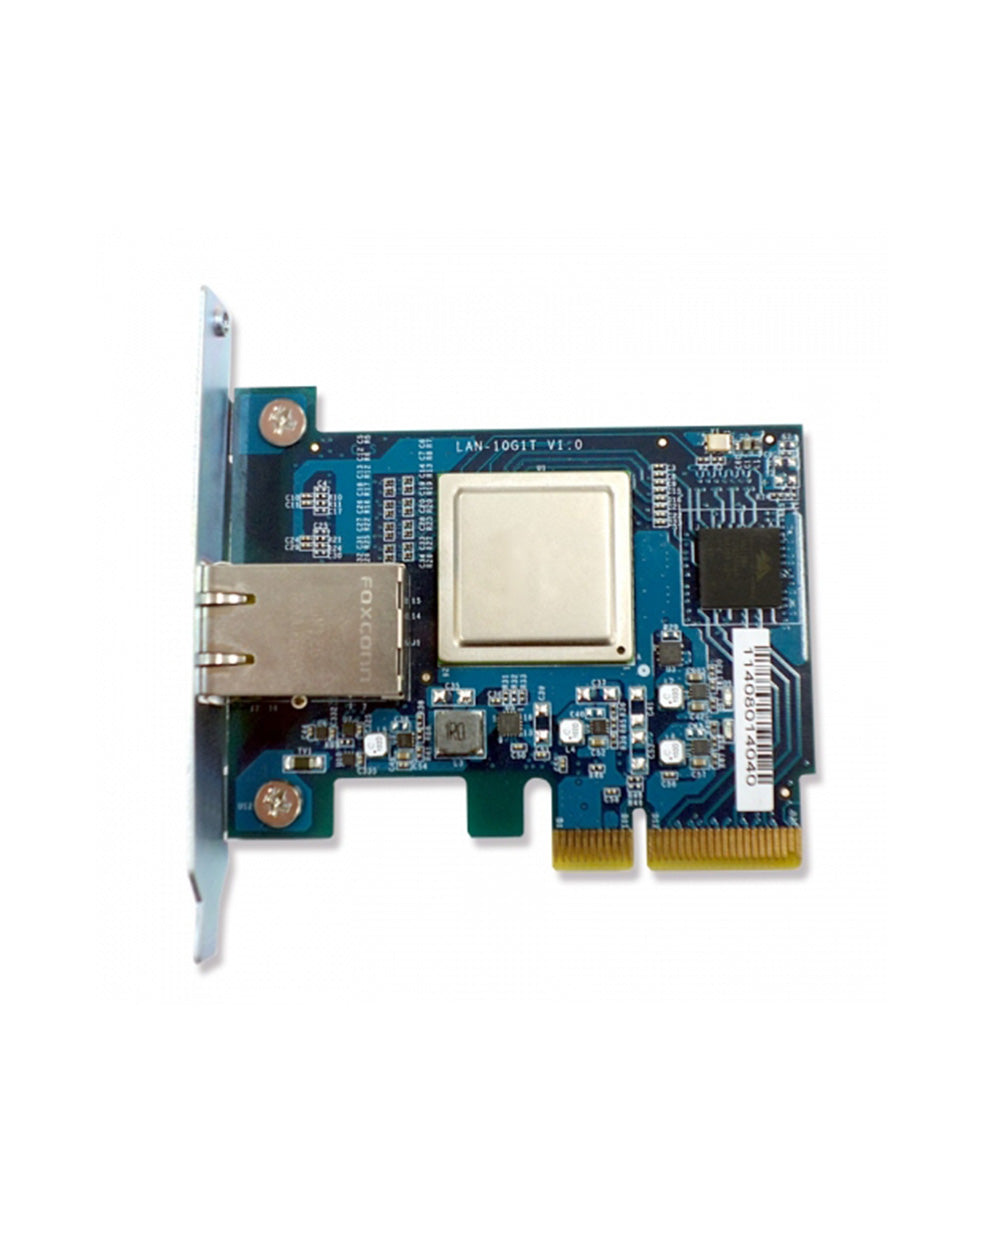 Add a QNAP LAN-10G1T-D Single-port (10Gbase-T) 10GbE network expansion card to your NAS for only $199.00 from $199.00